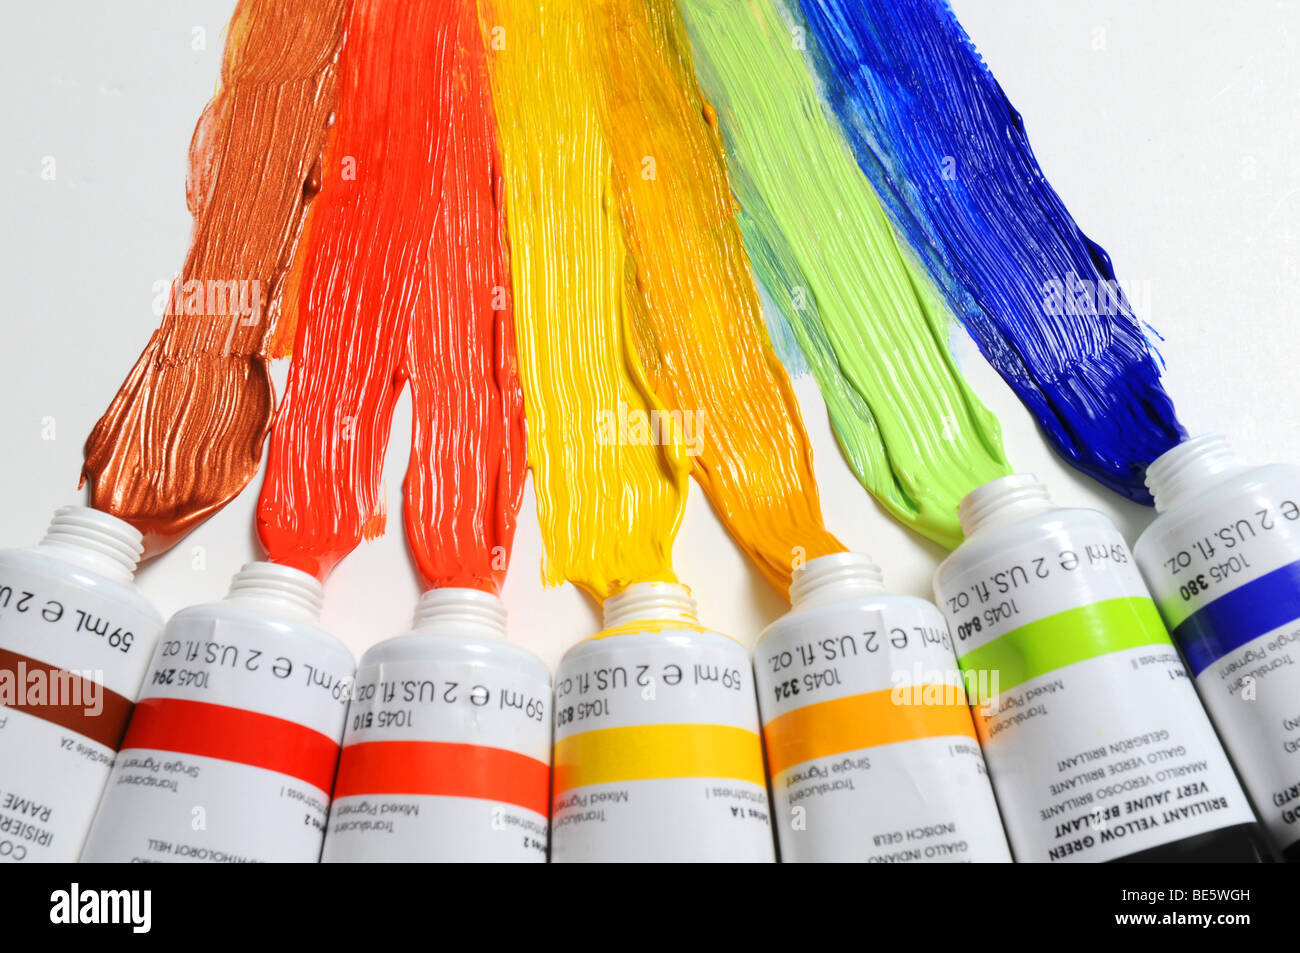 Paint of different colors spread over a white background Stock Photo